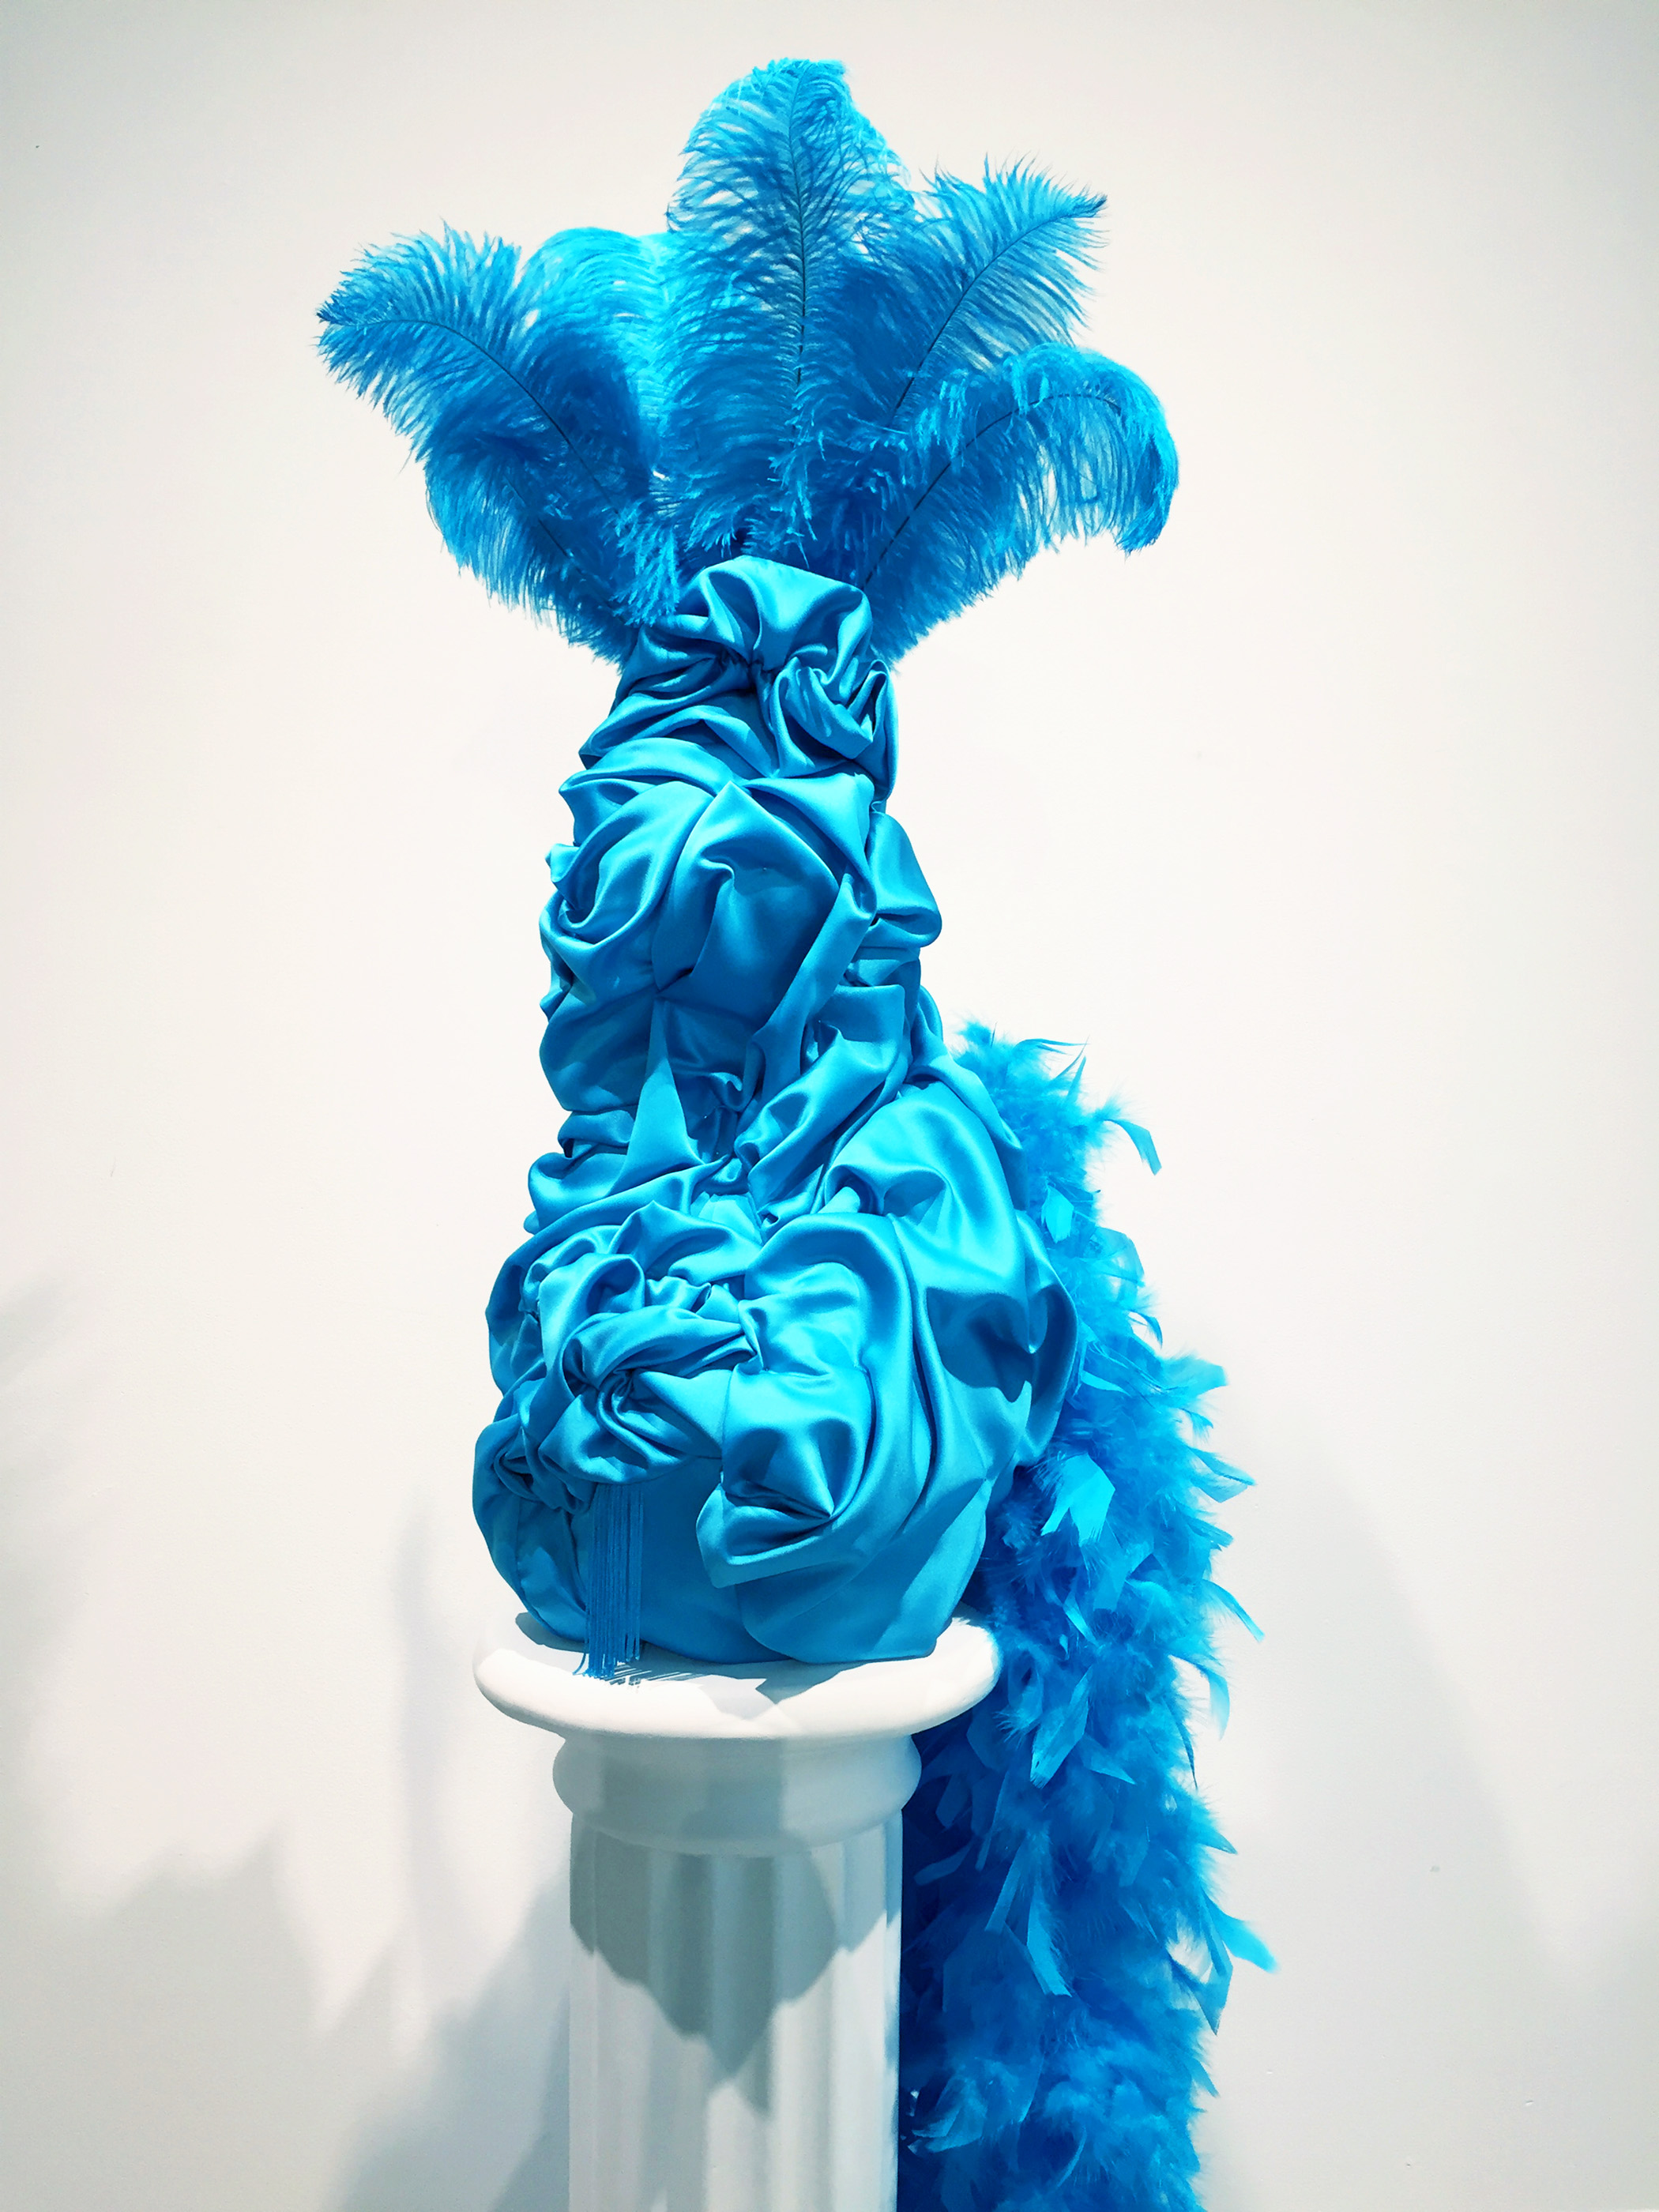 Esma  , 2019   Polystyrene foam, fabrics, feathers, glass beads, sequins and dressmaker pins  31 x 8 x 8 inches